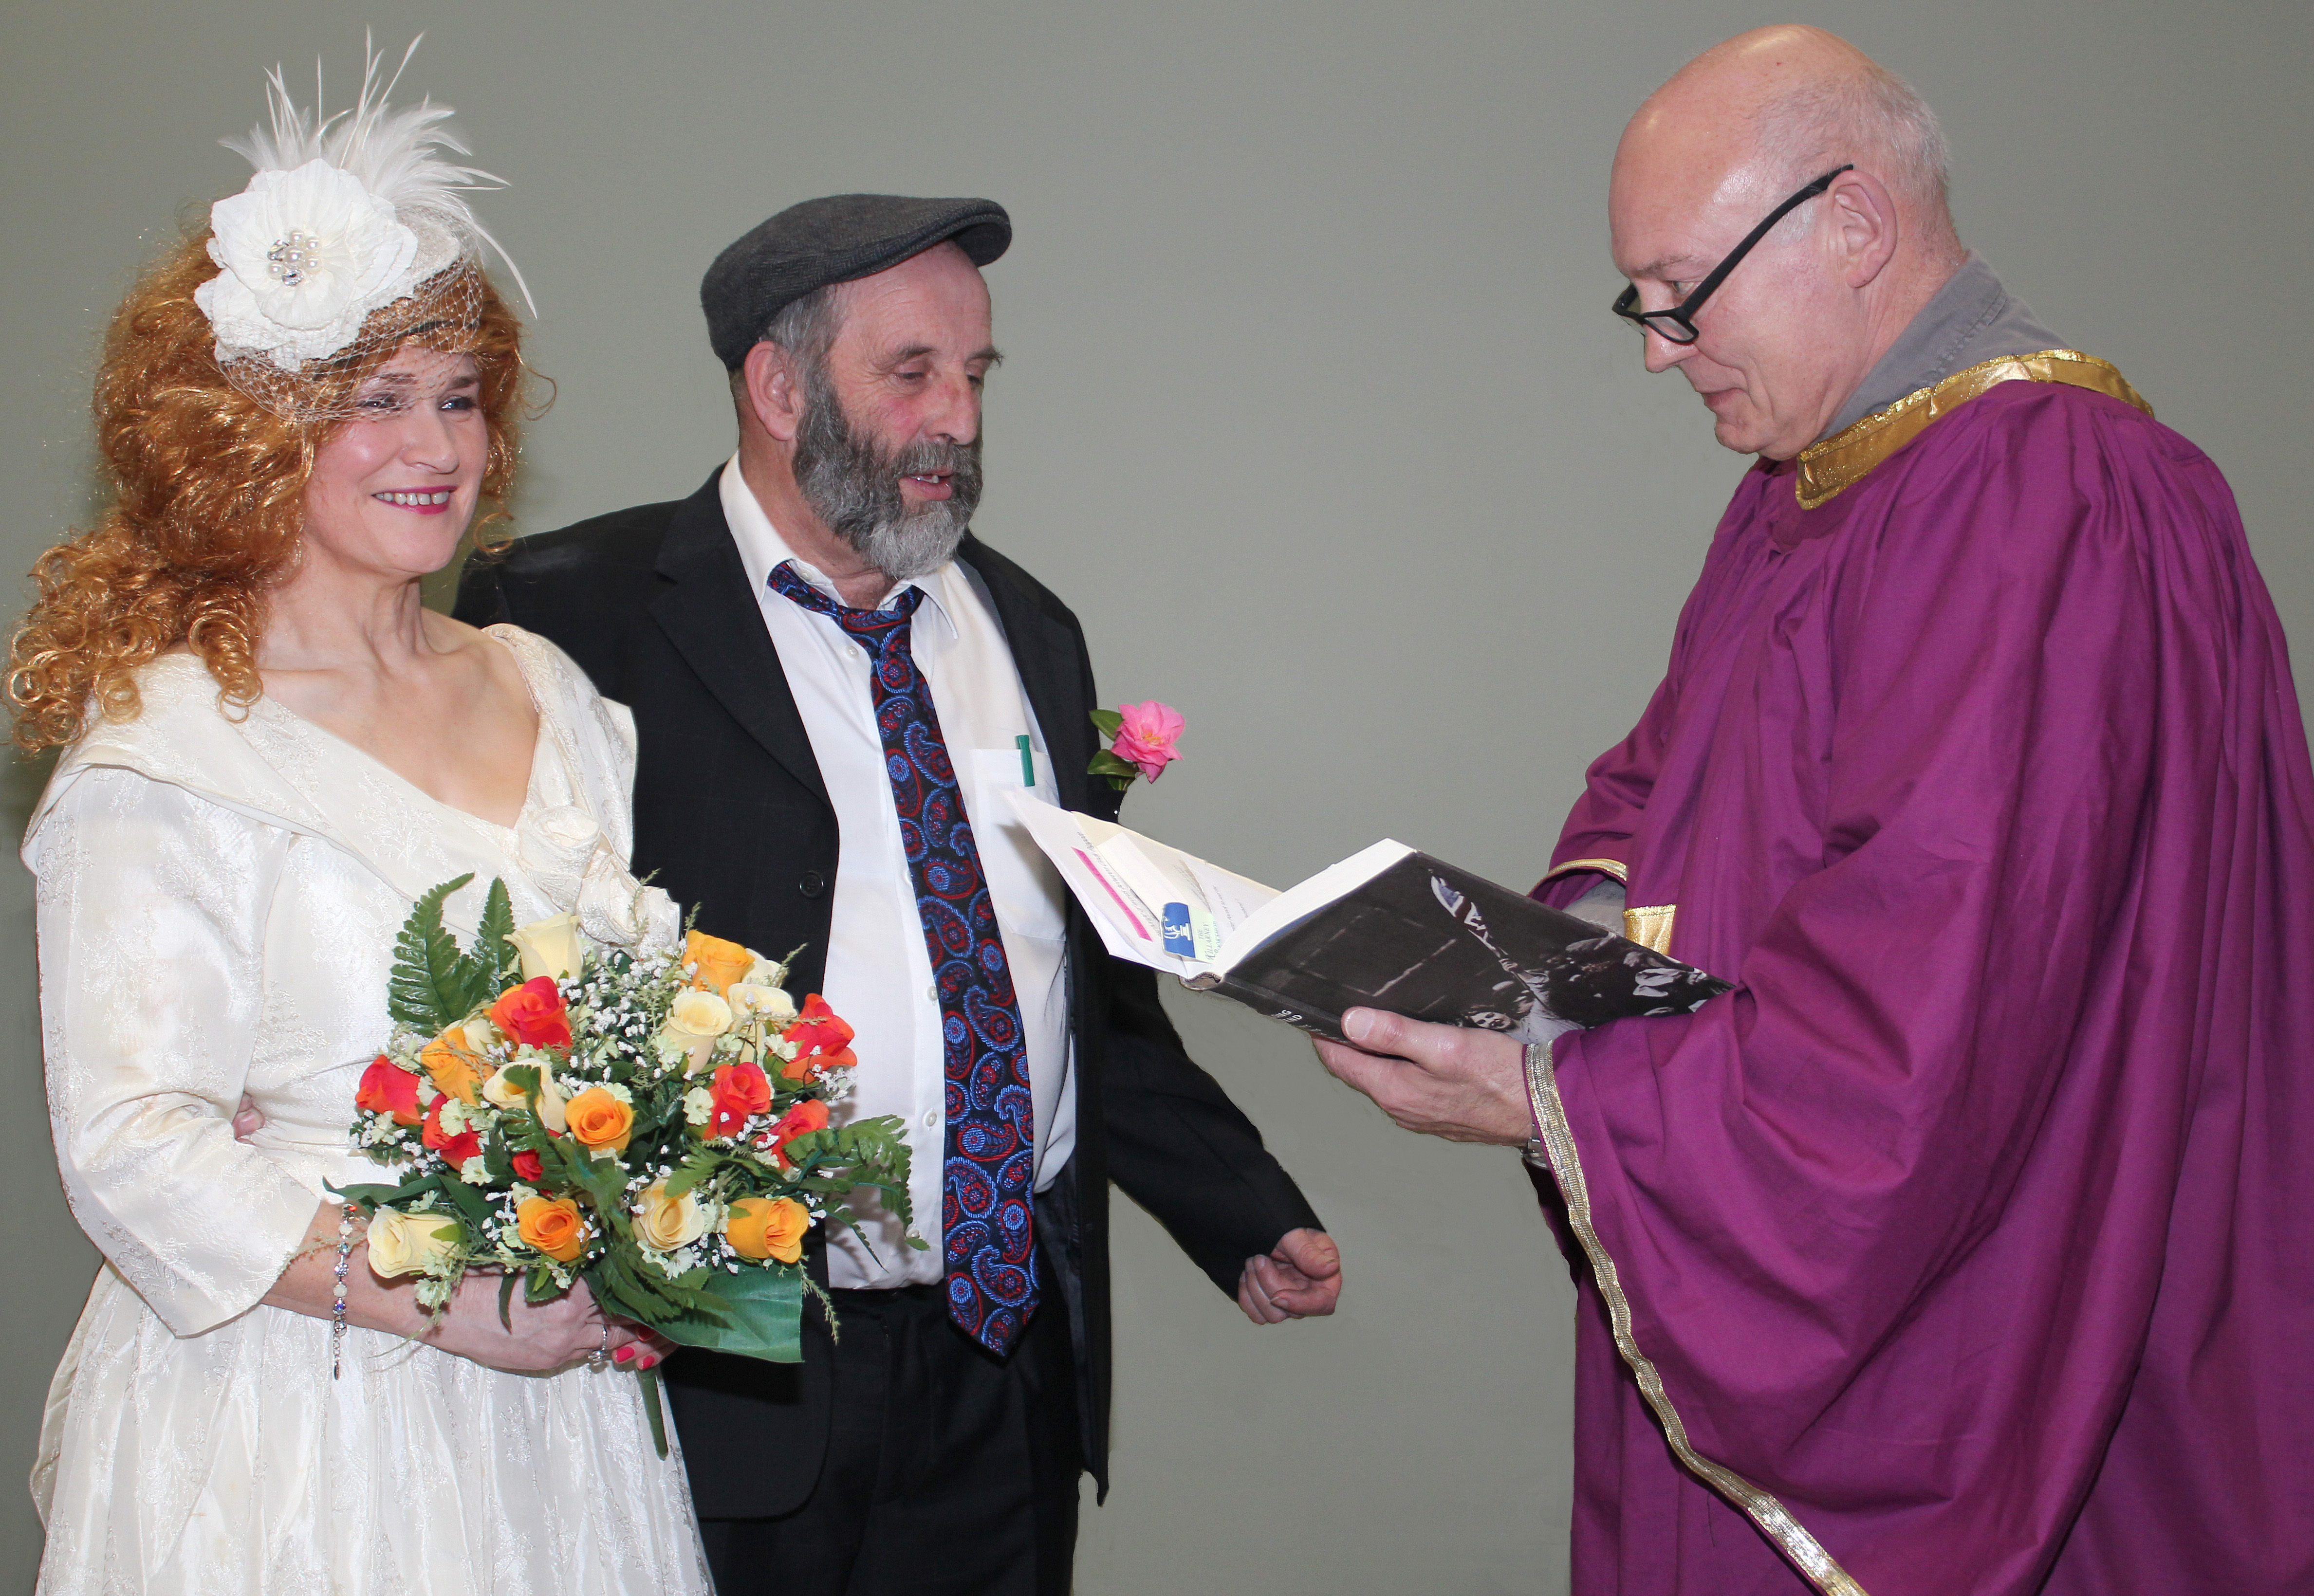 18 Danny Healy Rae weds Margaret Christian in Civil Cermony at Moc Wedding Sneem